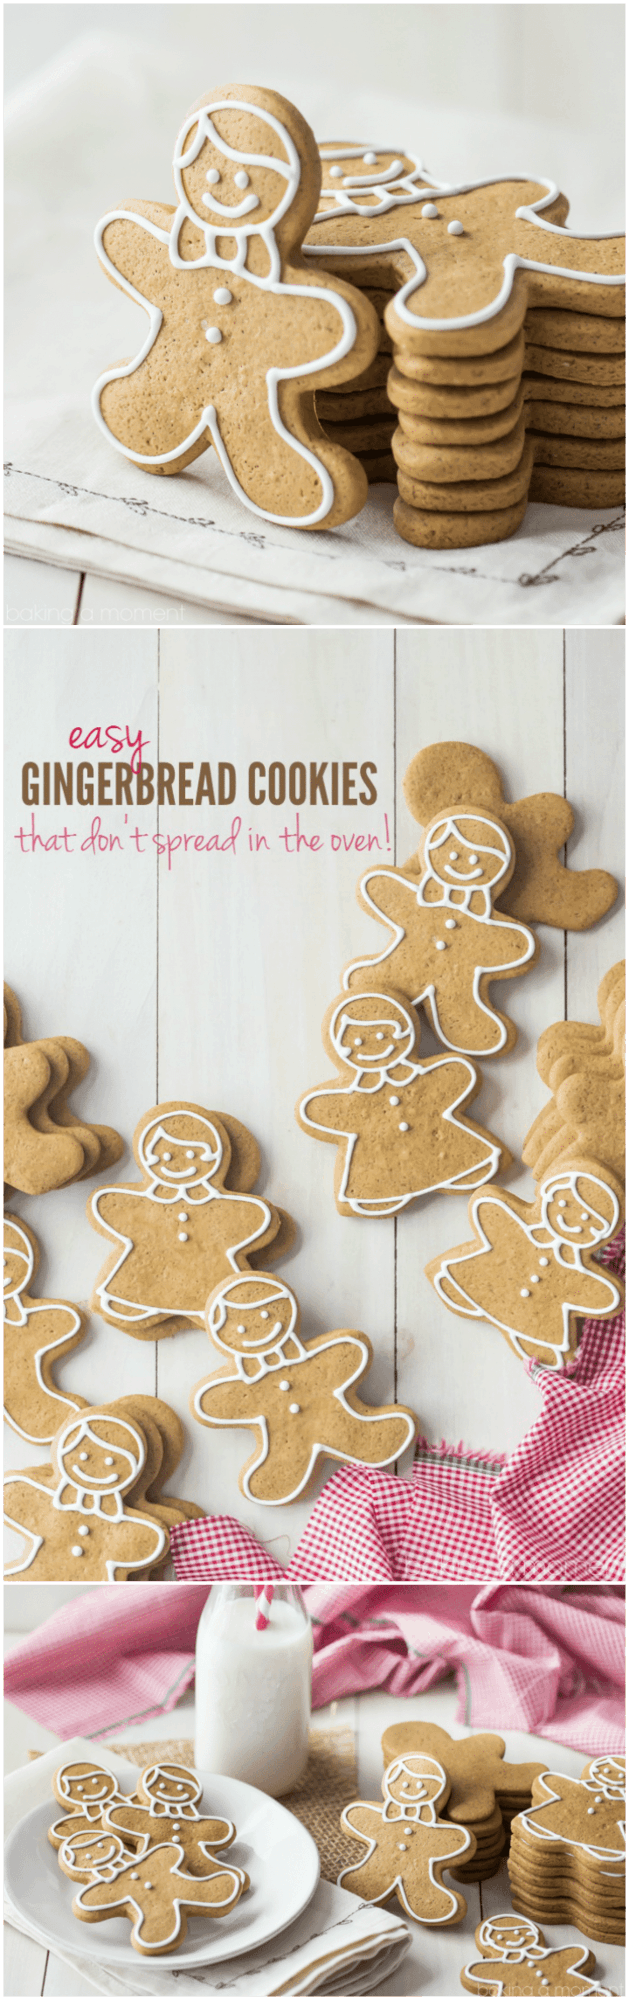 The Best Gingerbread Cookie Recipe Ive Ever Tried These Kept Their Neat Edges